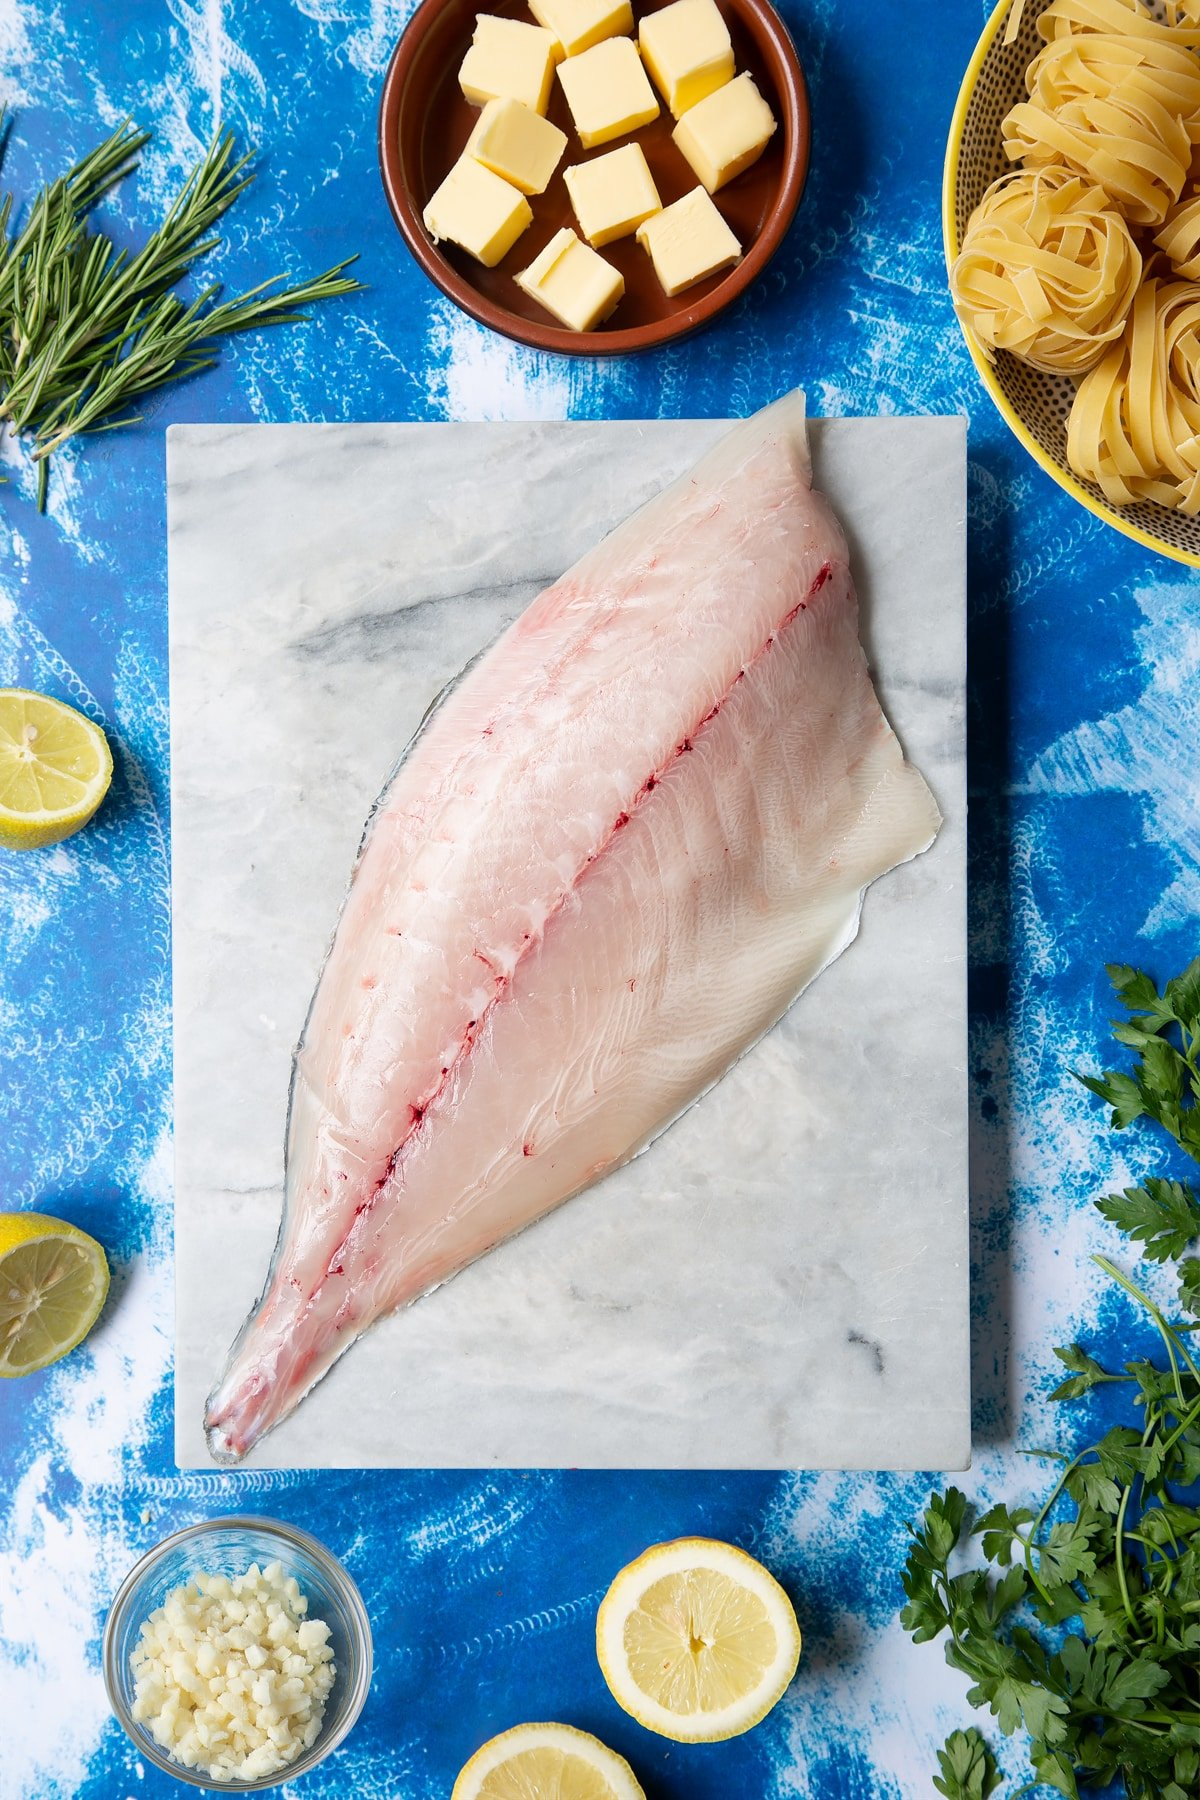 A Dutch Yellowtail fillet on a marble board, skin side down. Hand shown for scale